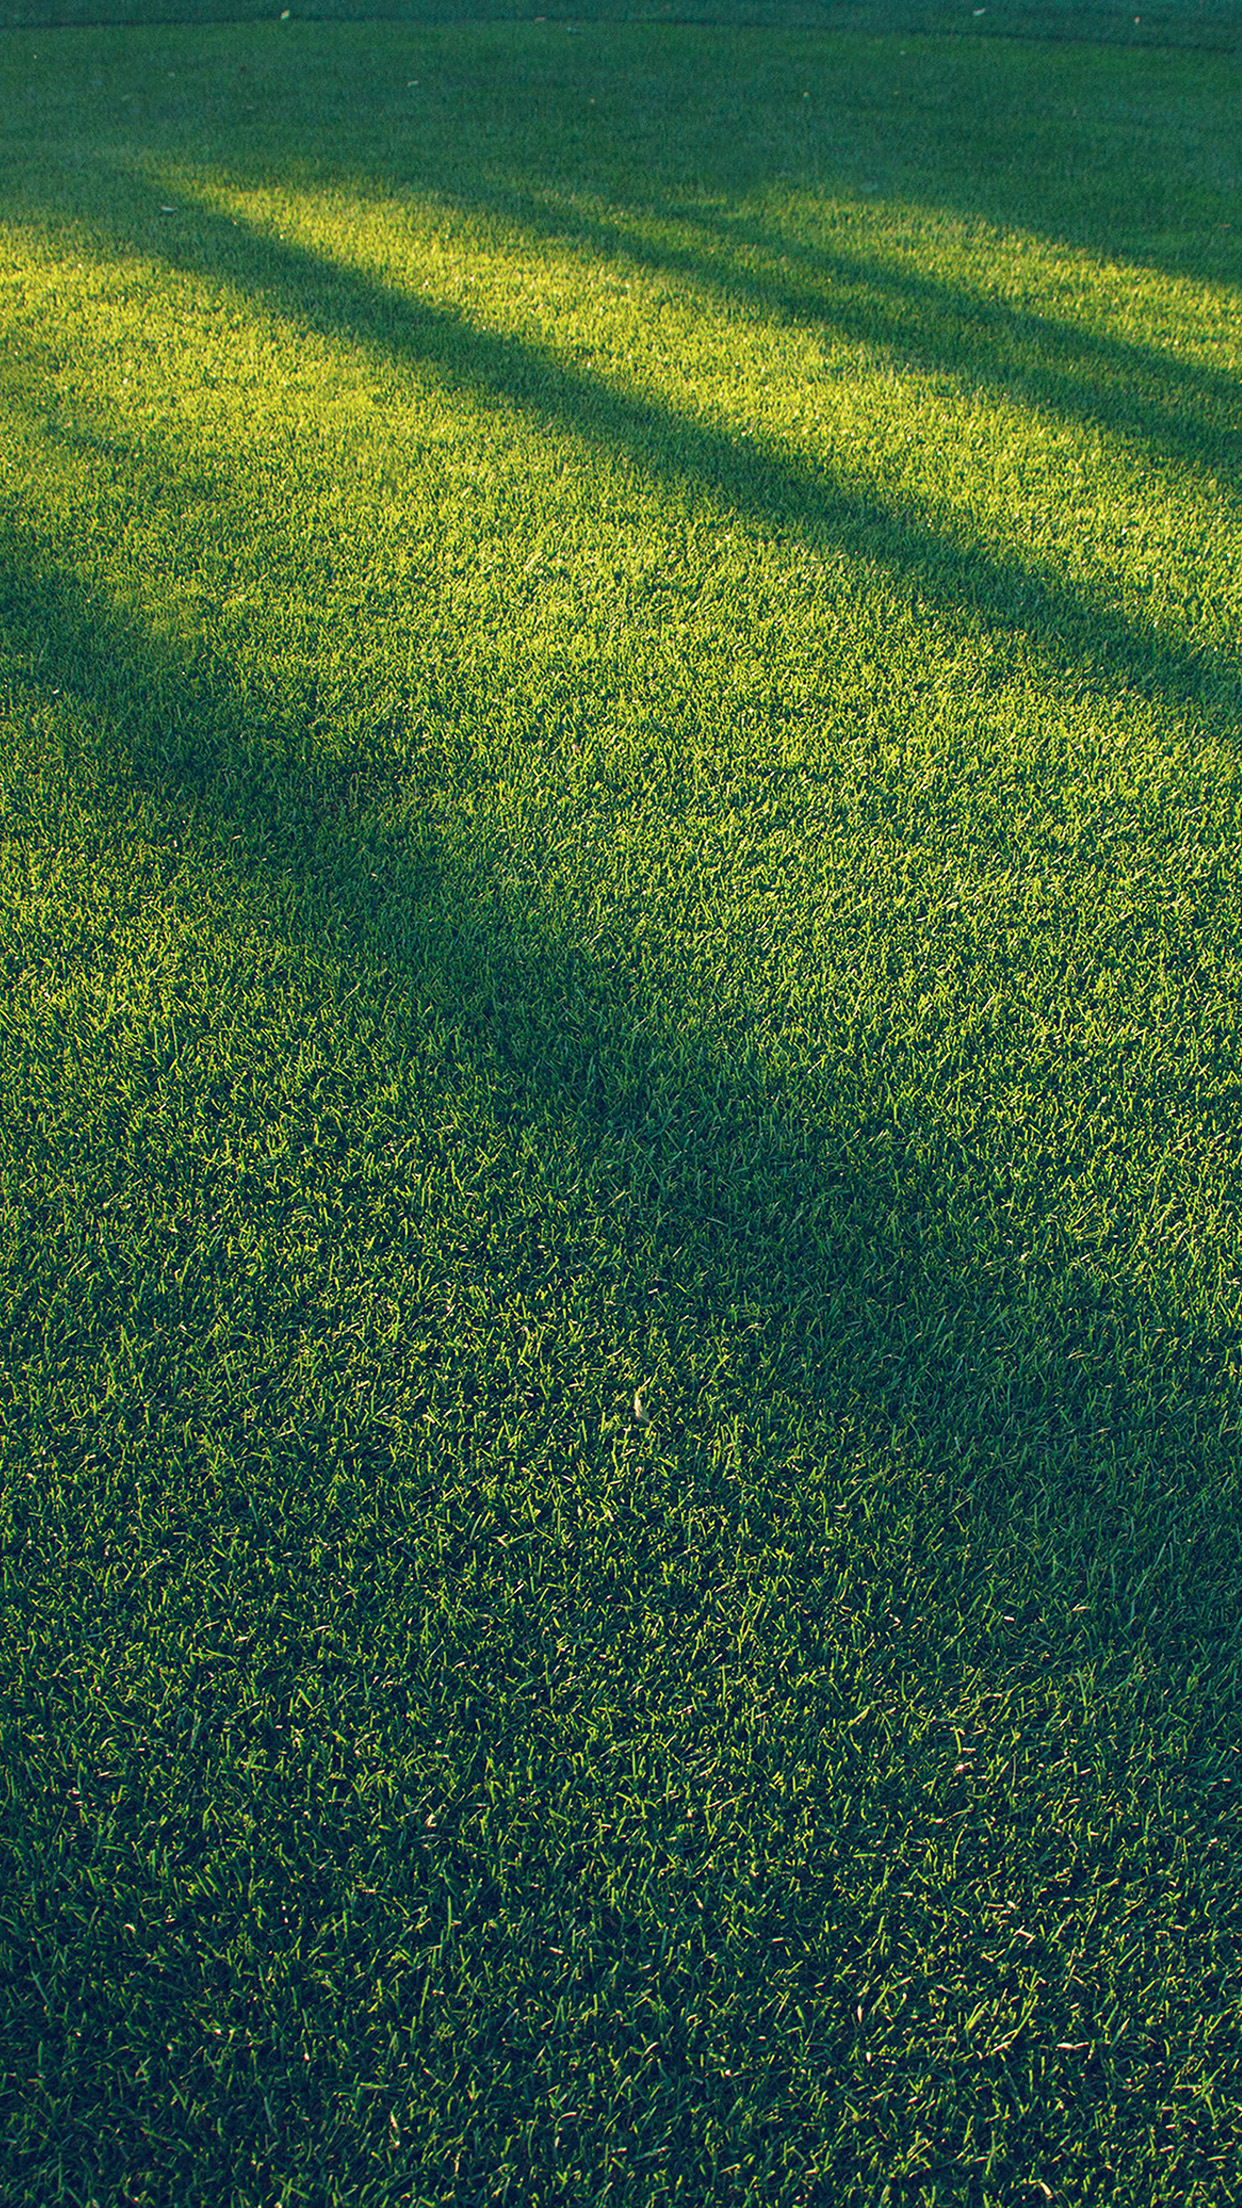 Iphone6papers Com Iphone 6 Wallpaper Vj86 Lawn Grass